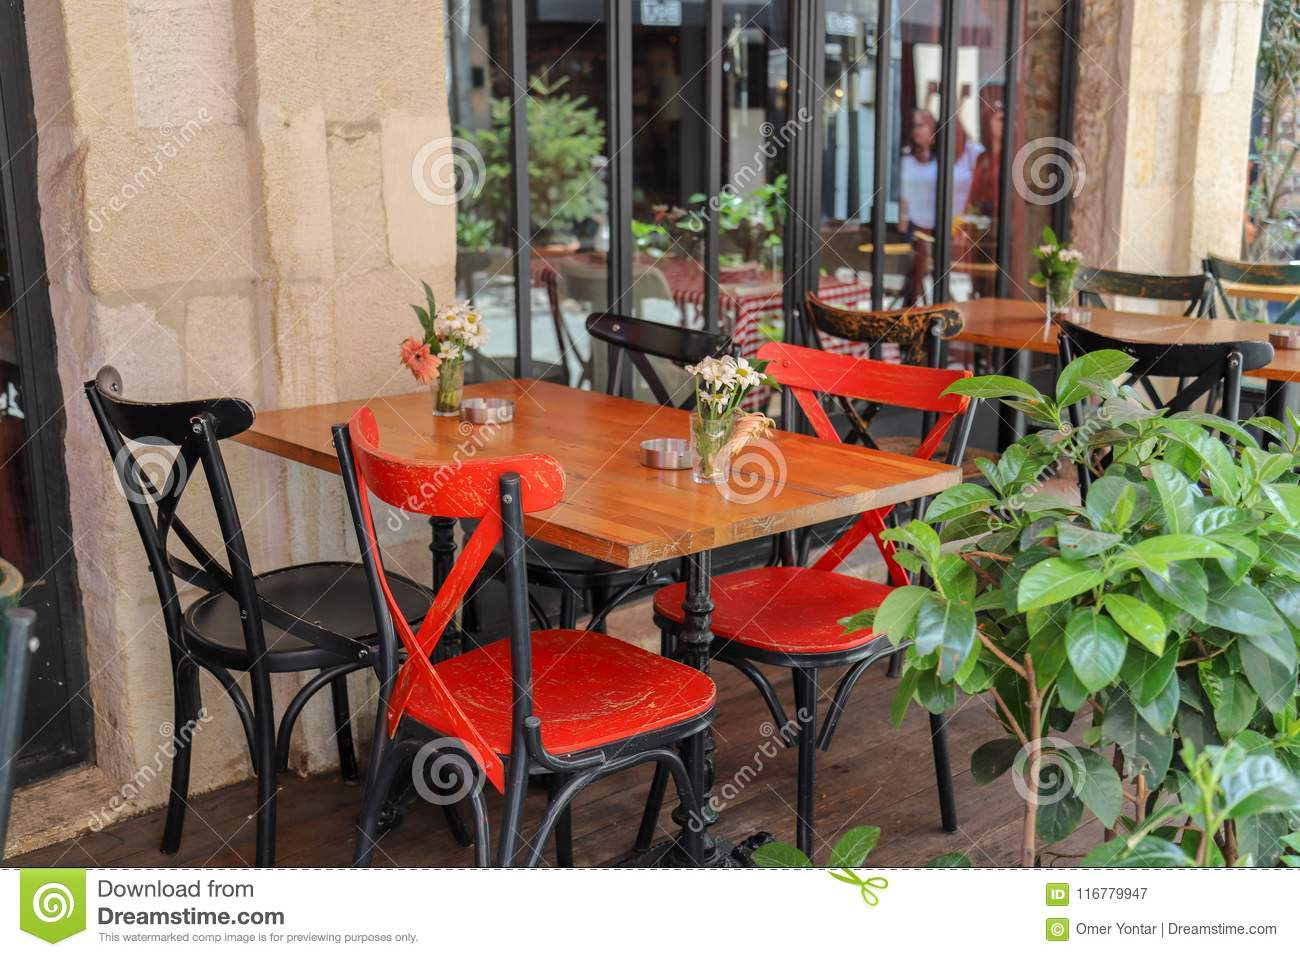 Tables And Chairs In Cafe Or Restaurants Outside Stock Image